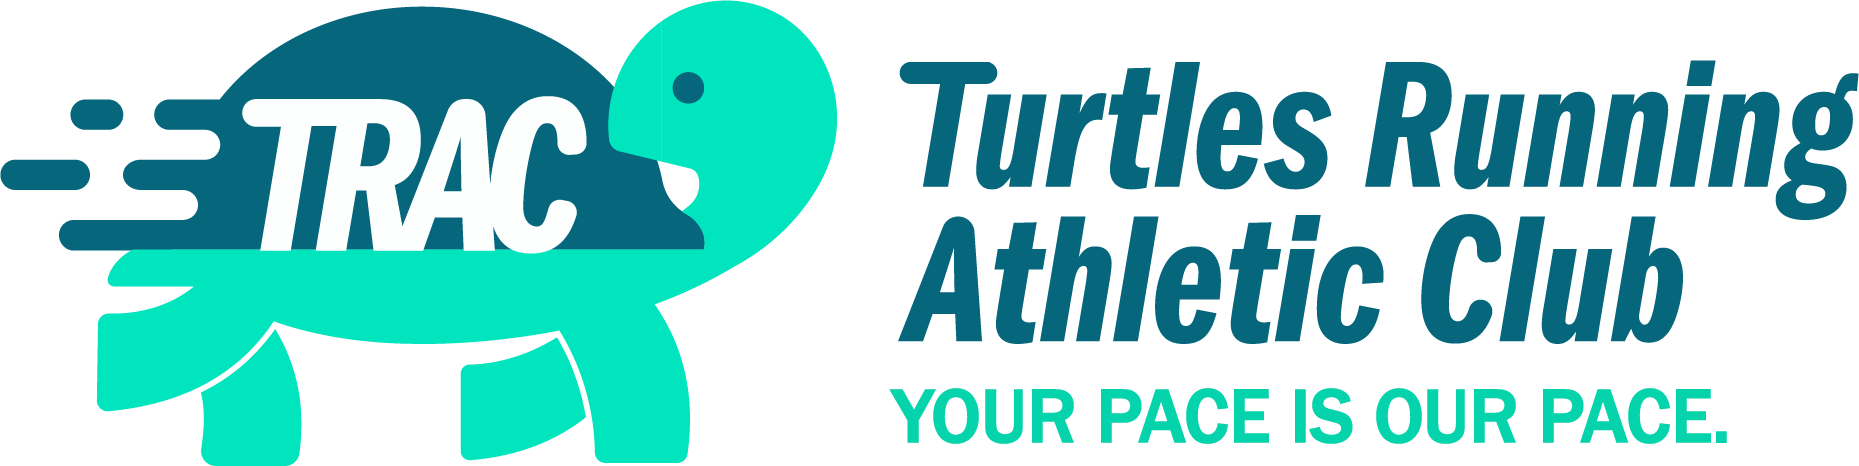 Turtles Running Athletic Club